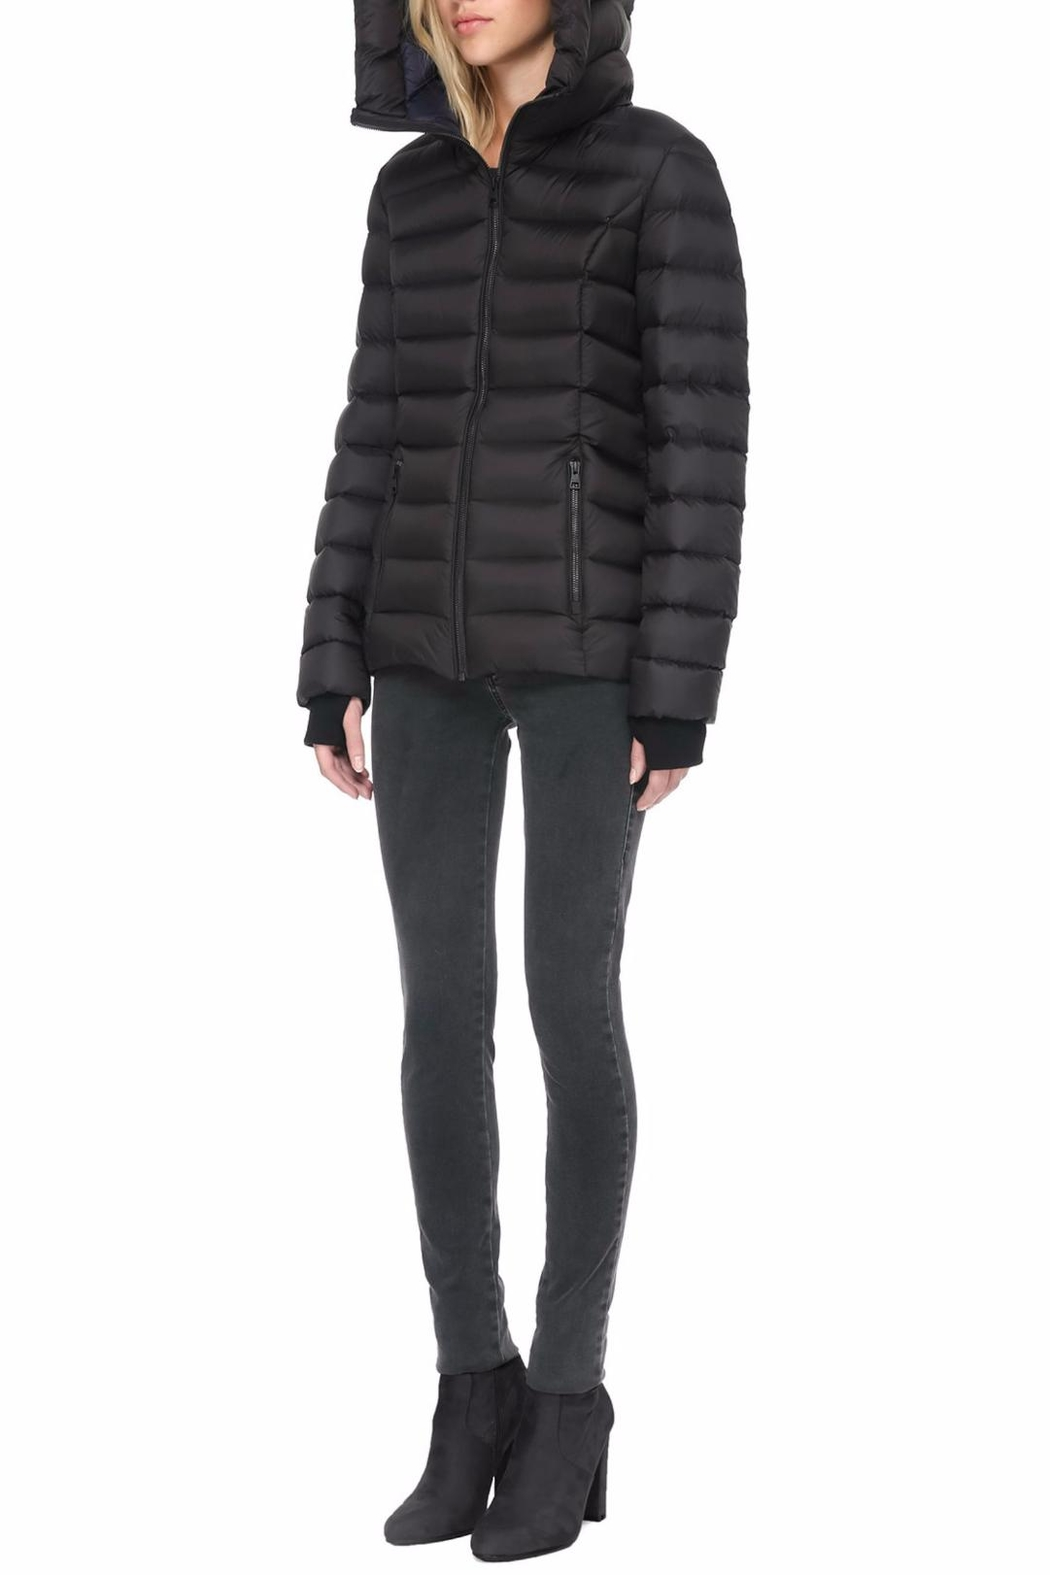 Soia & Kyo Charlise Light Down Jacket - Side Cropped Image